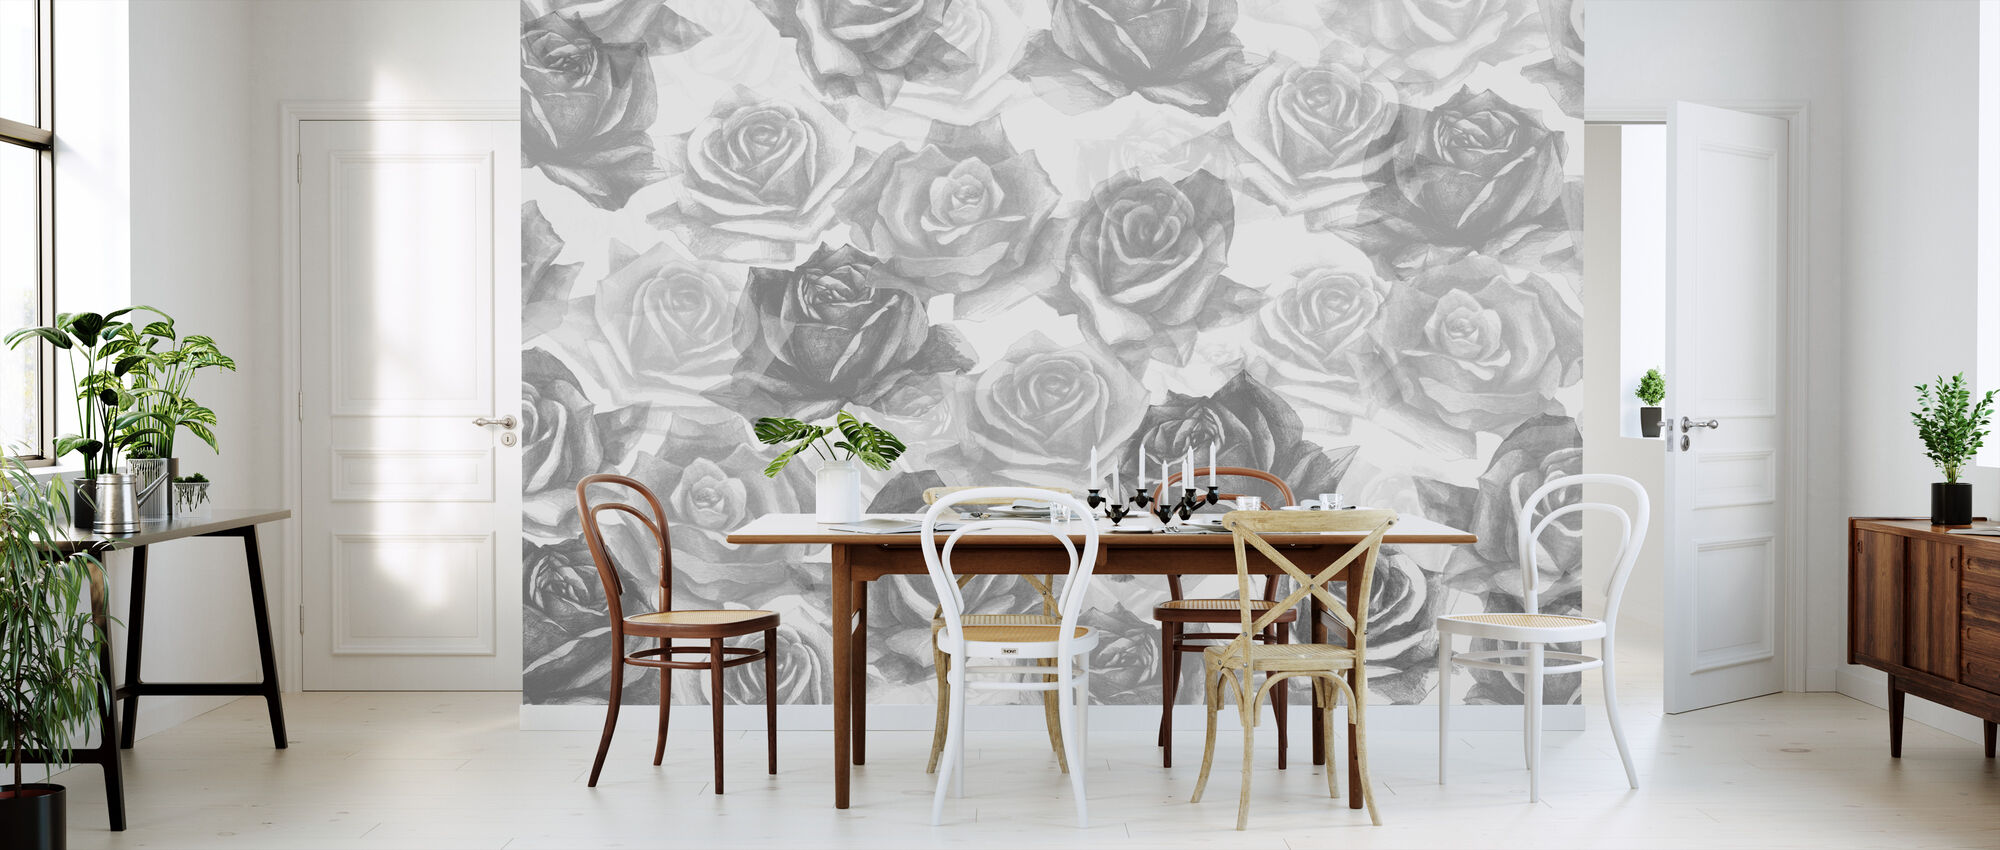 My Grey Roses - Wallpaper - Kitchen